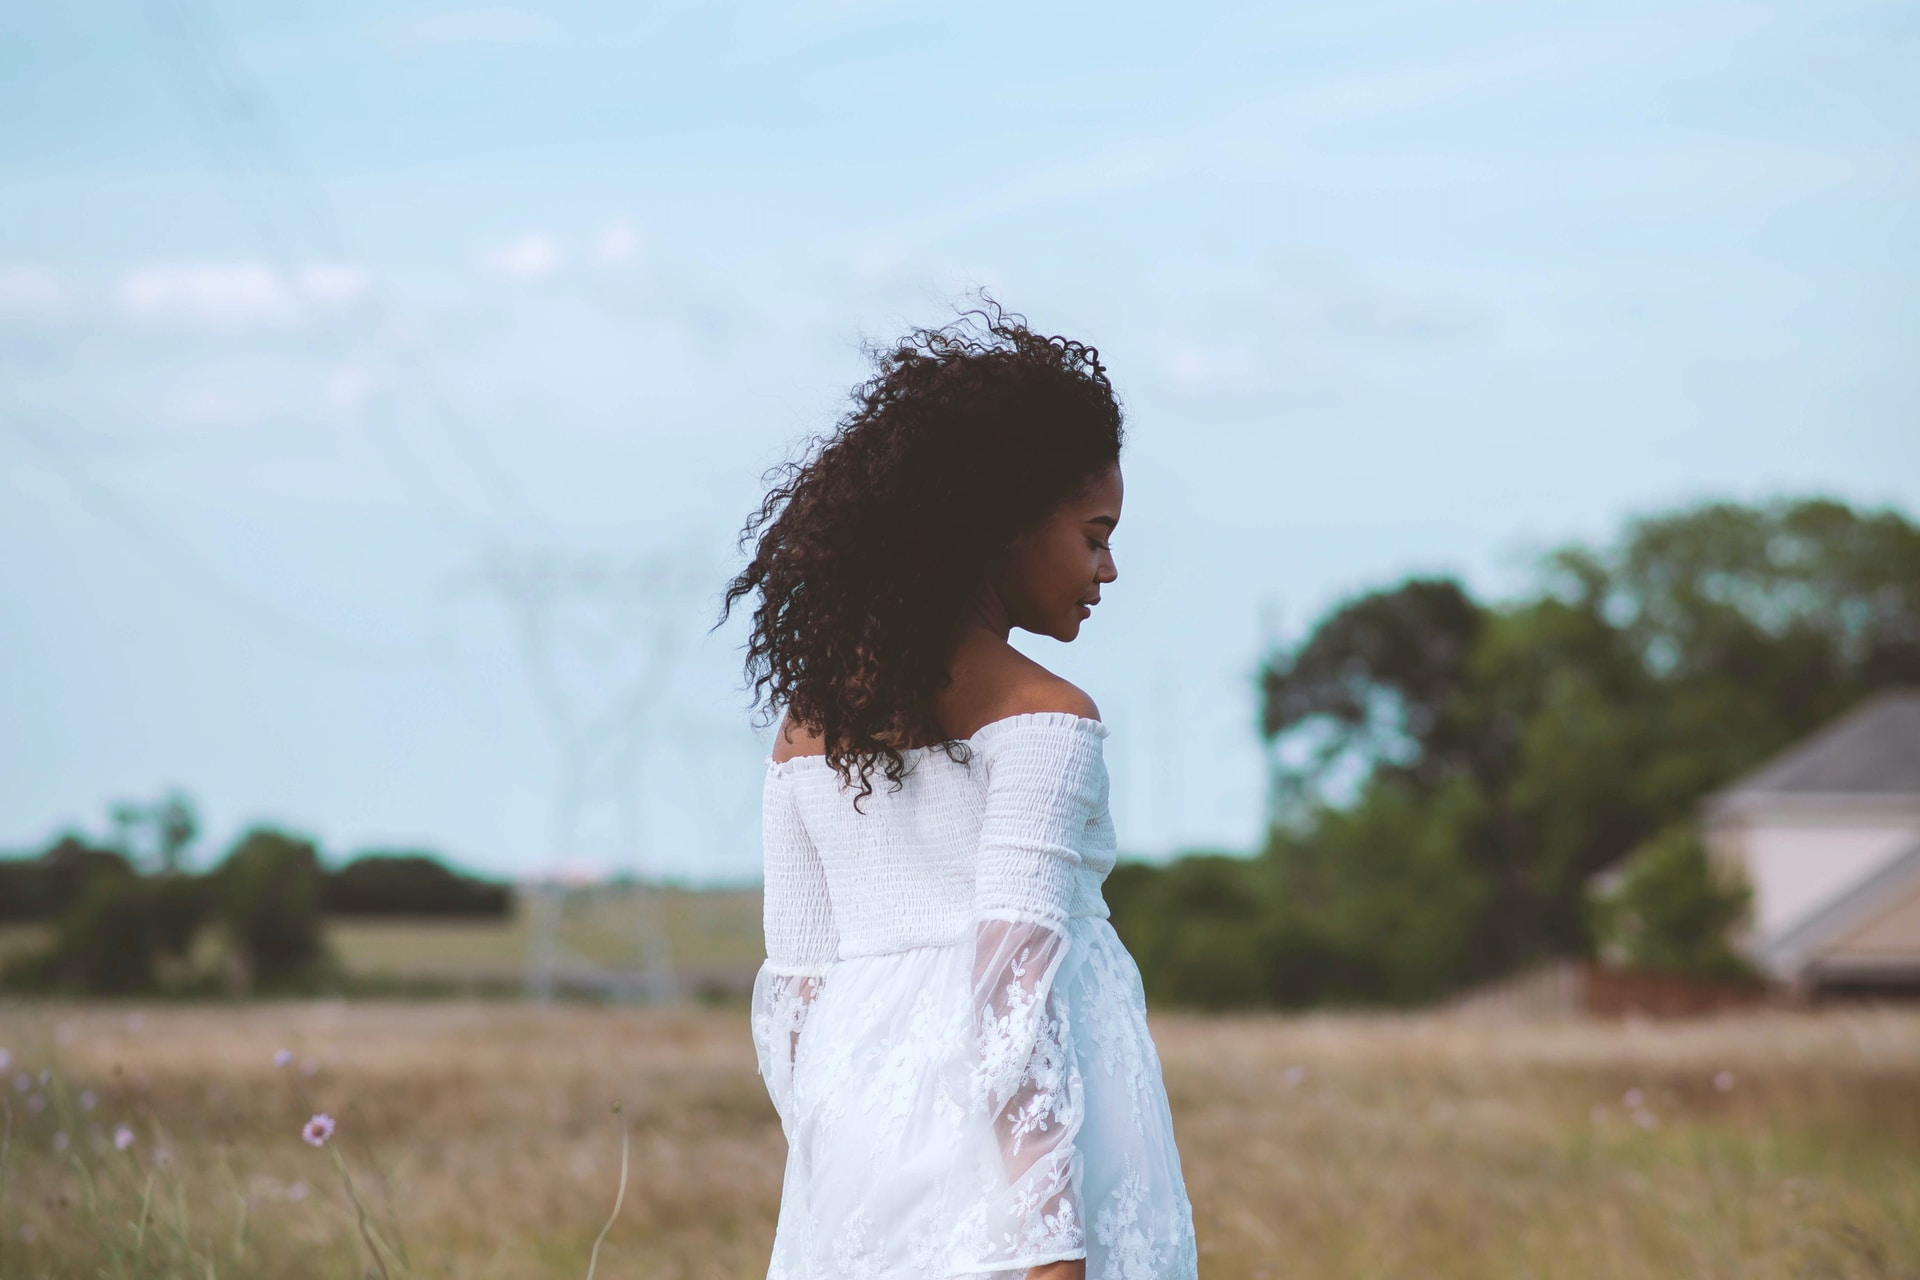 girl in white dress standing on green grass field during daytime